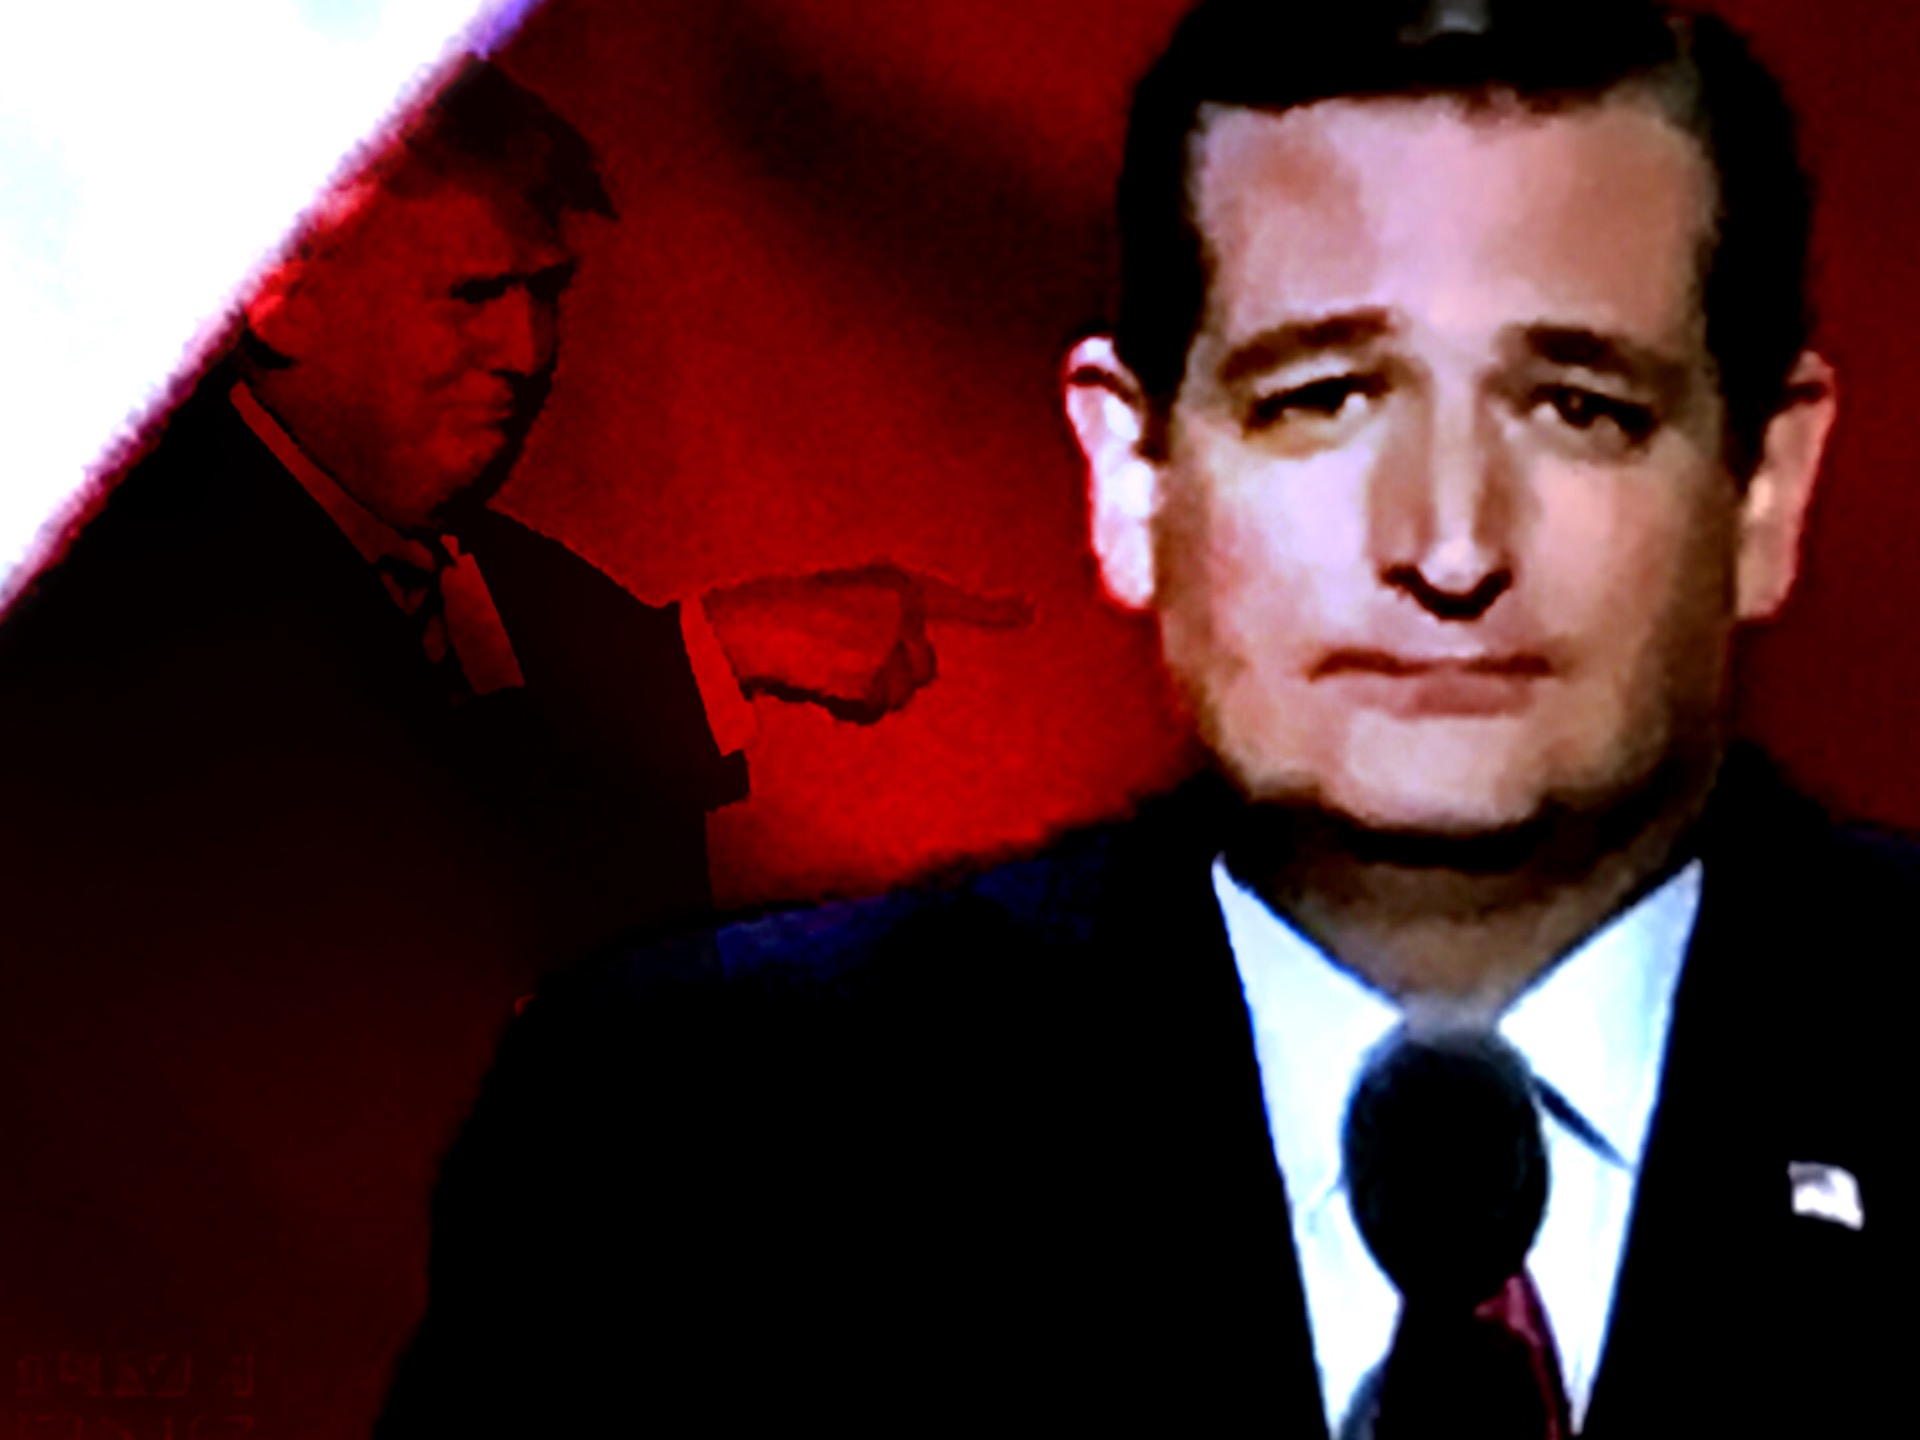 A digital composite image of Ted Cruz and Donald Trump at the RNC. (Composite image by Biz Herman/GroundTruth)